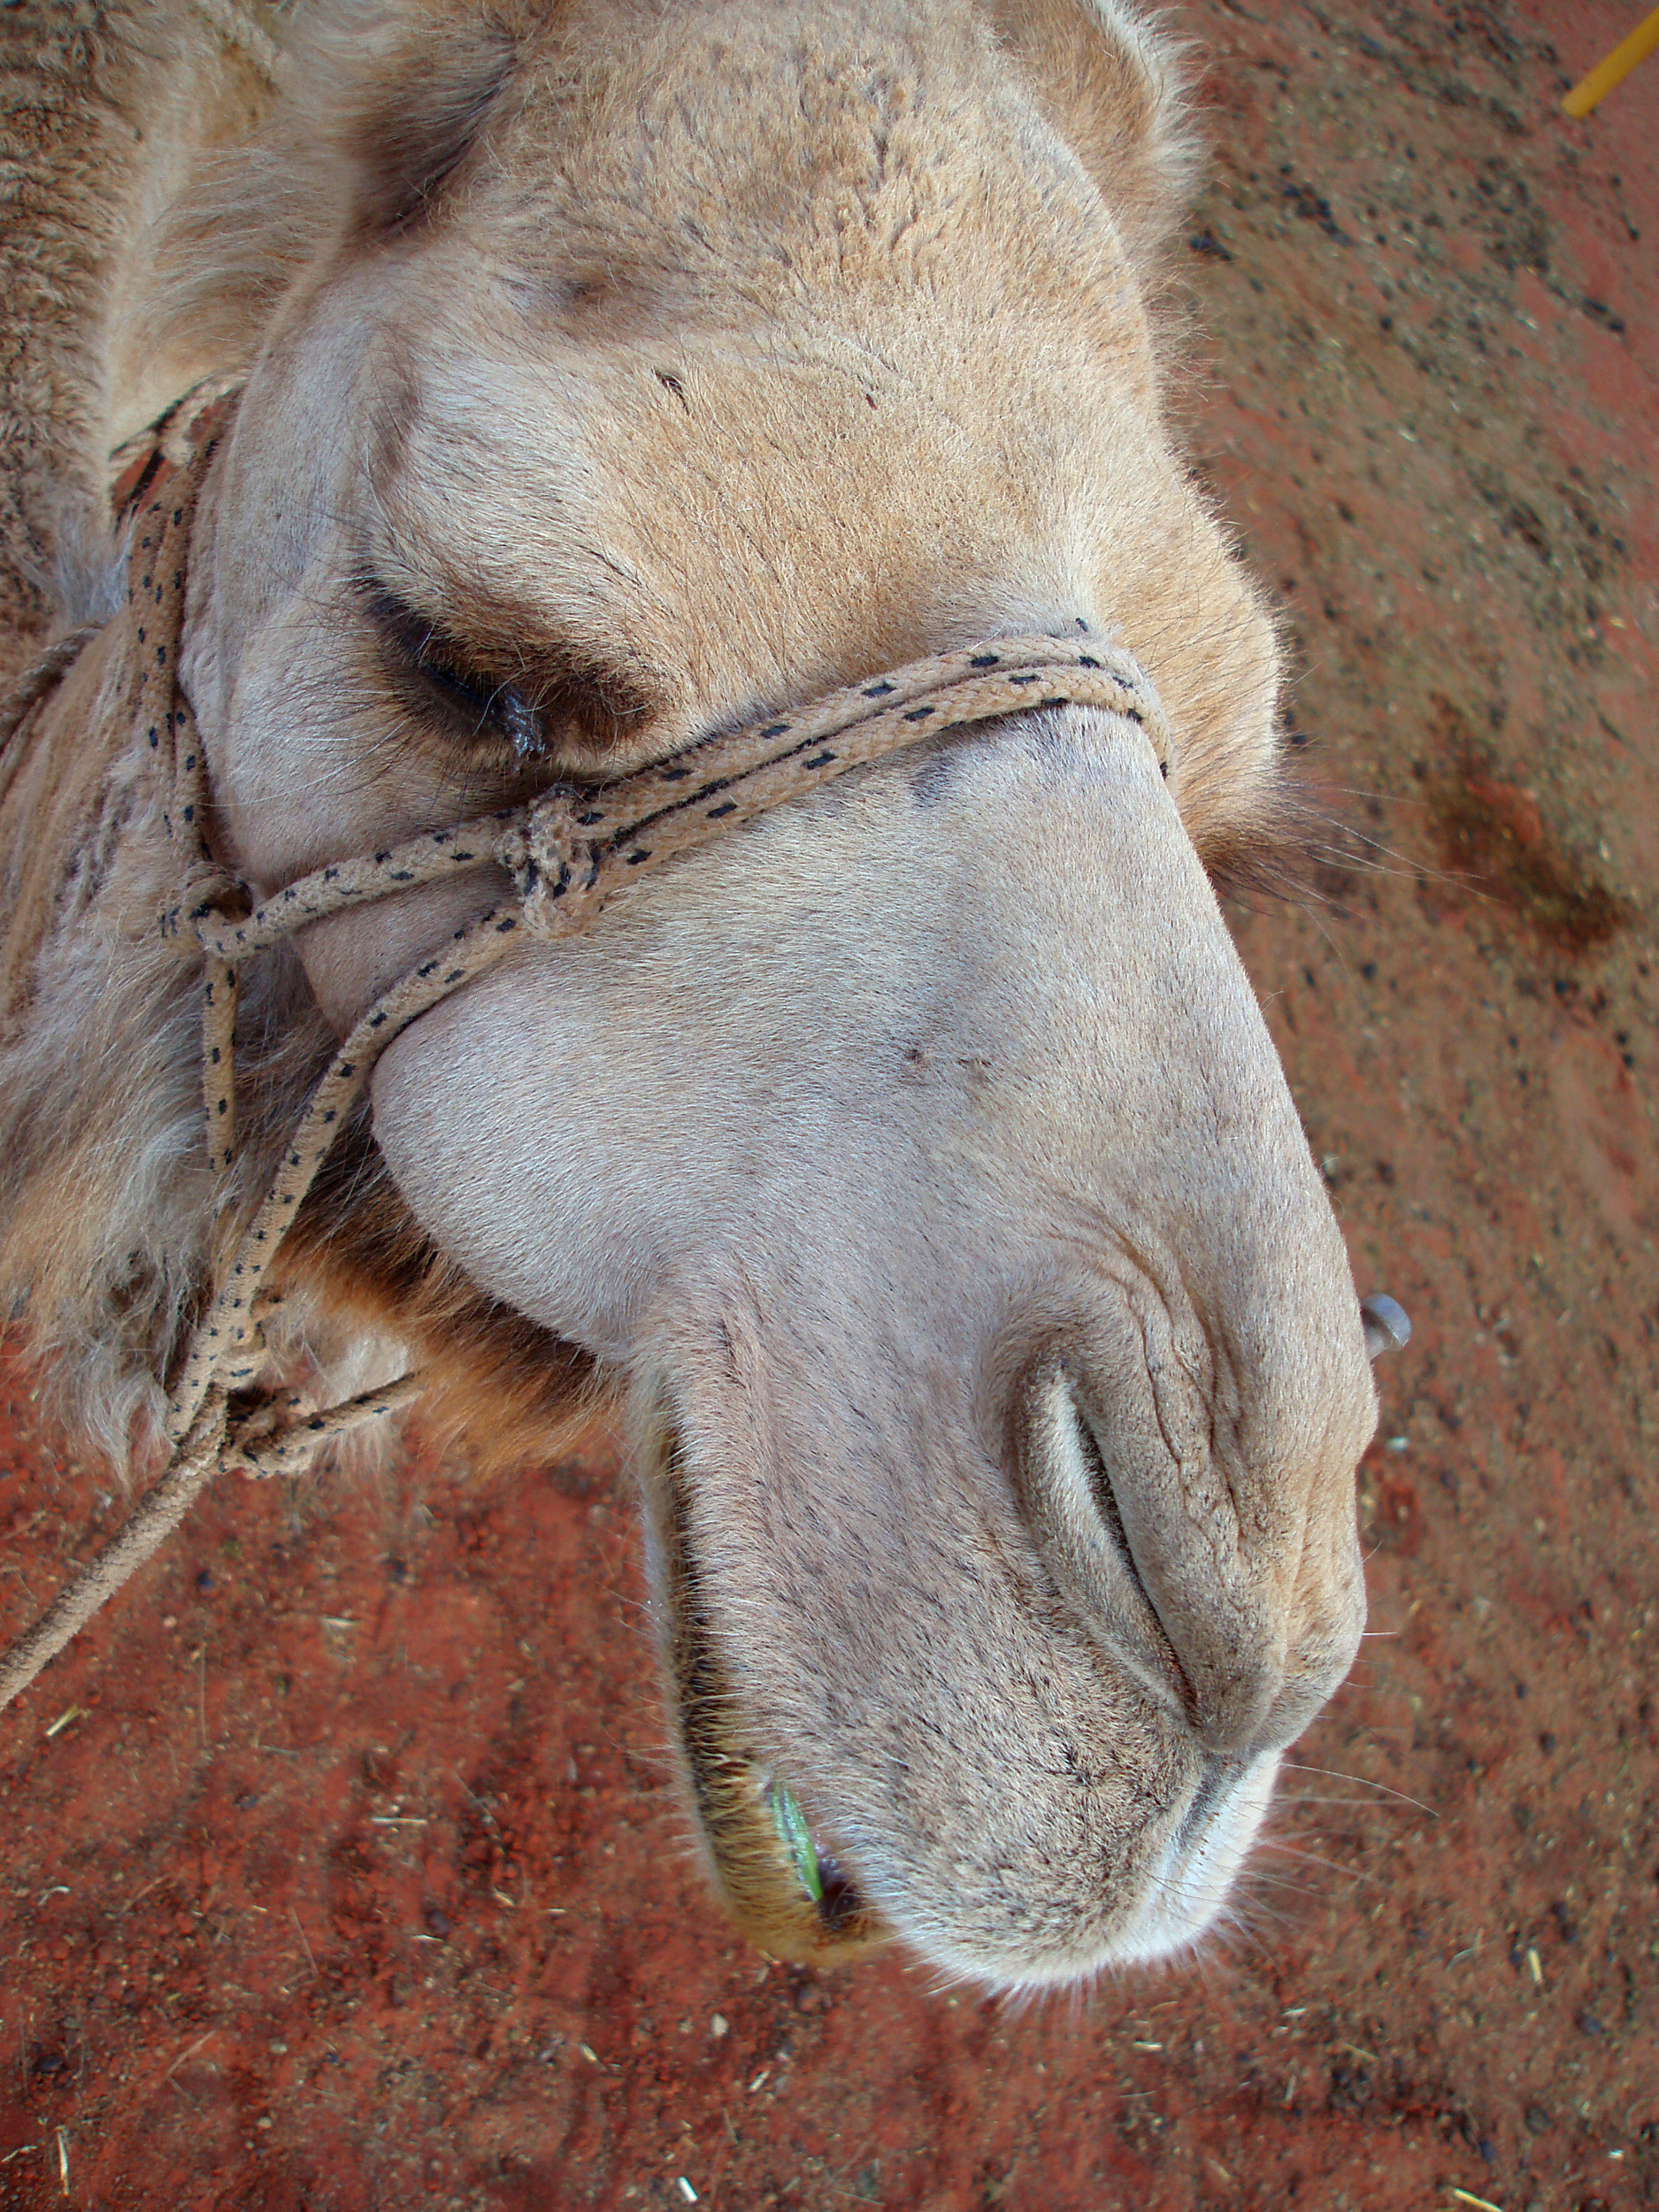 an arabian camel, there are estimated to be at least half a million wild arabian camels in australia